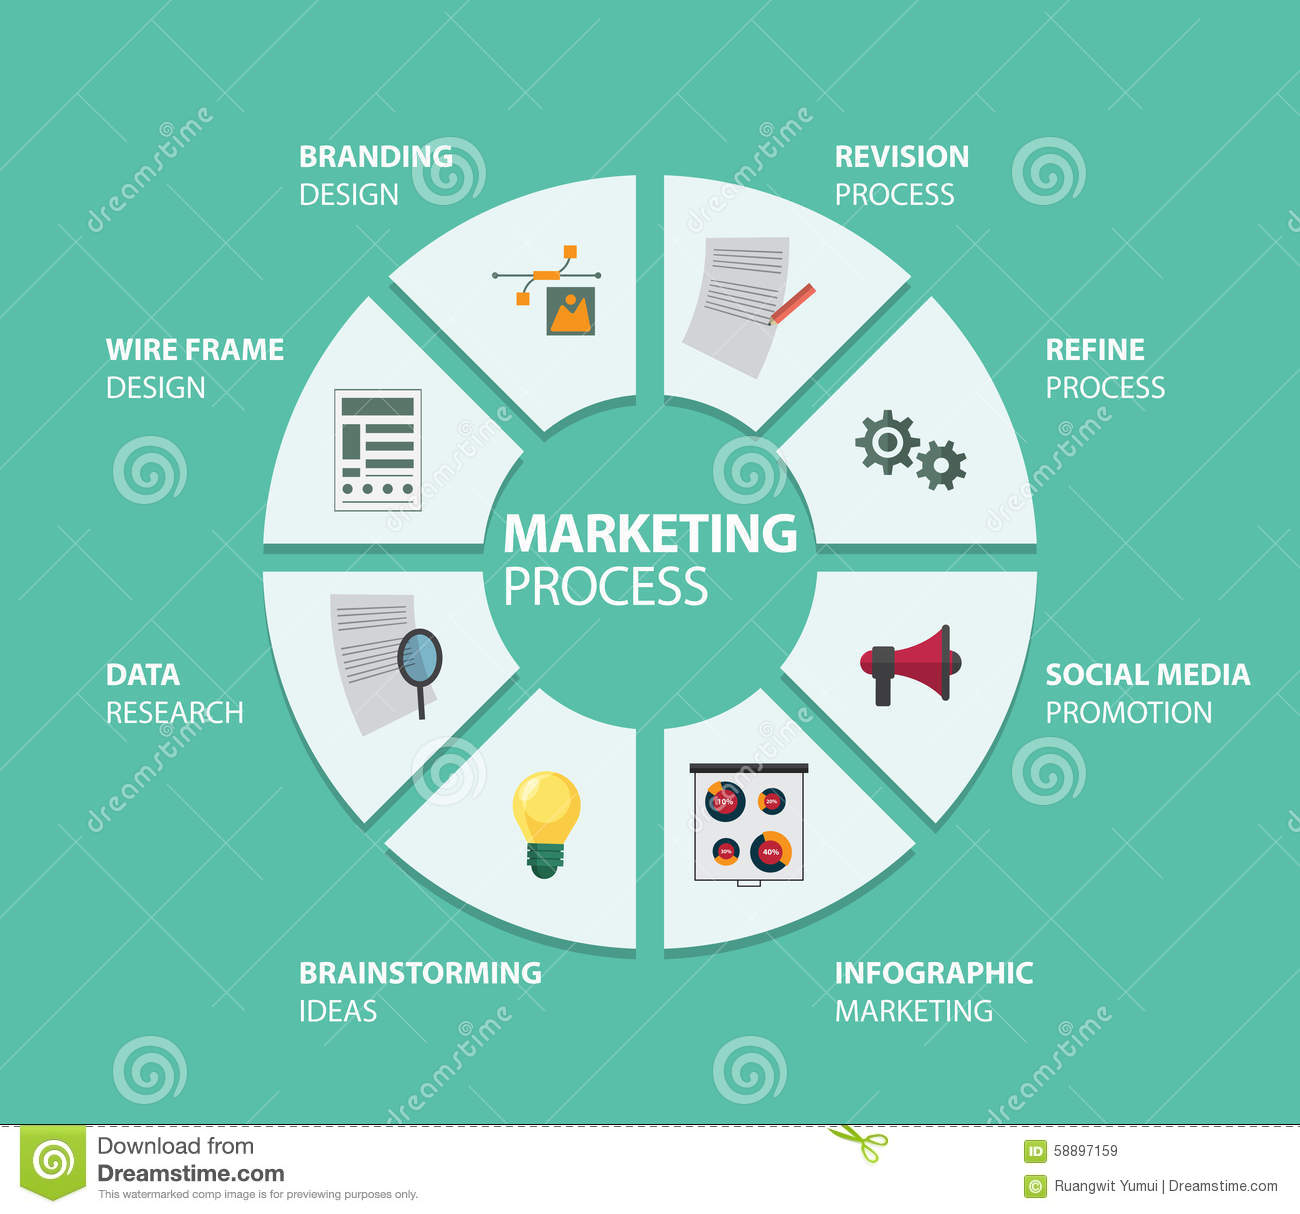 Key Business Marketing Timeline Infographic Template In ...